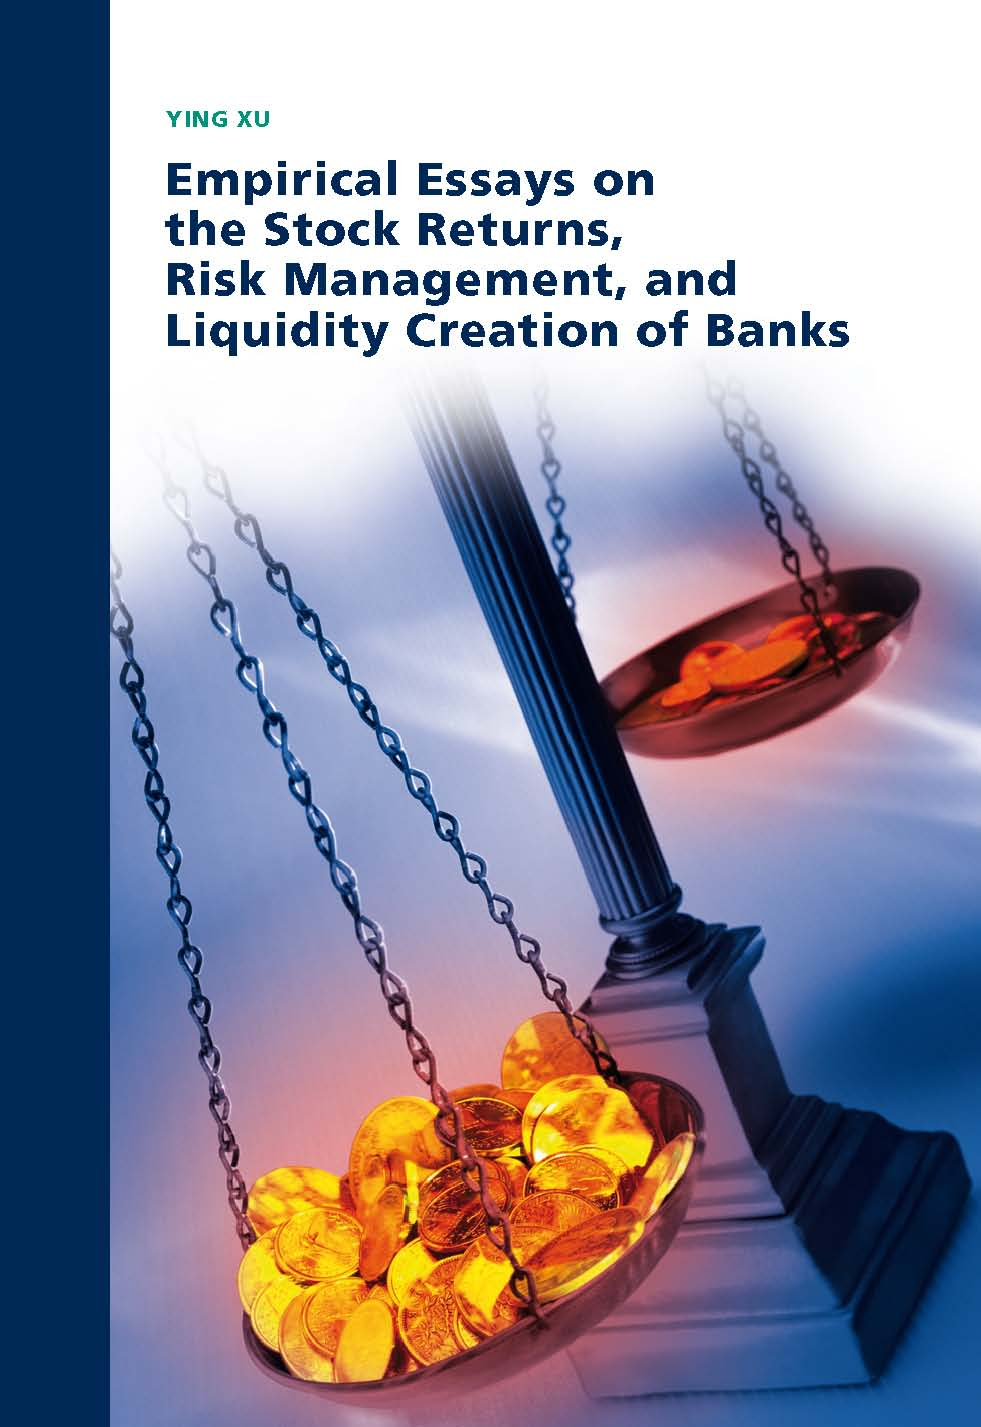 Empirical Essays on the Stock Returns, Risk Management, and Liquidity Creation of Banks